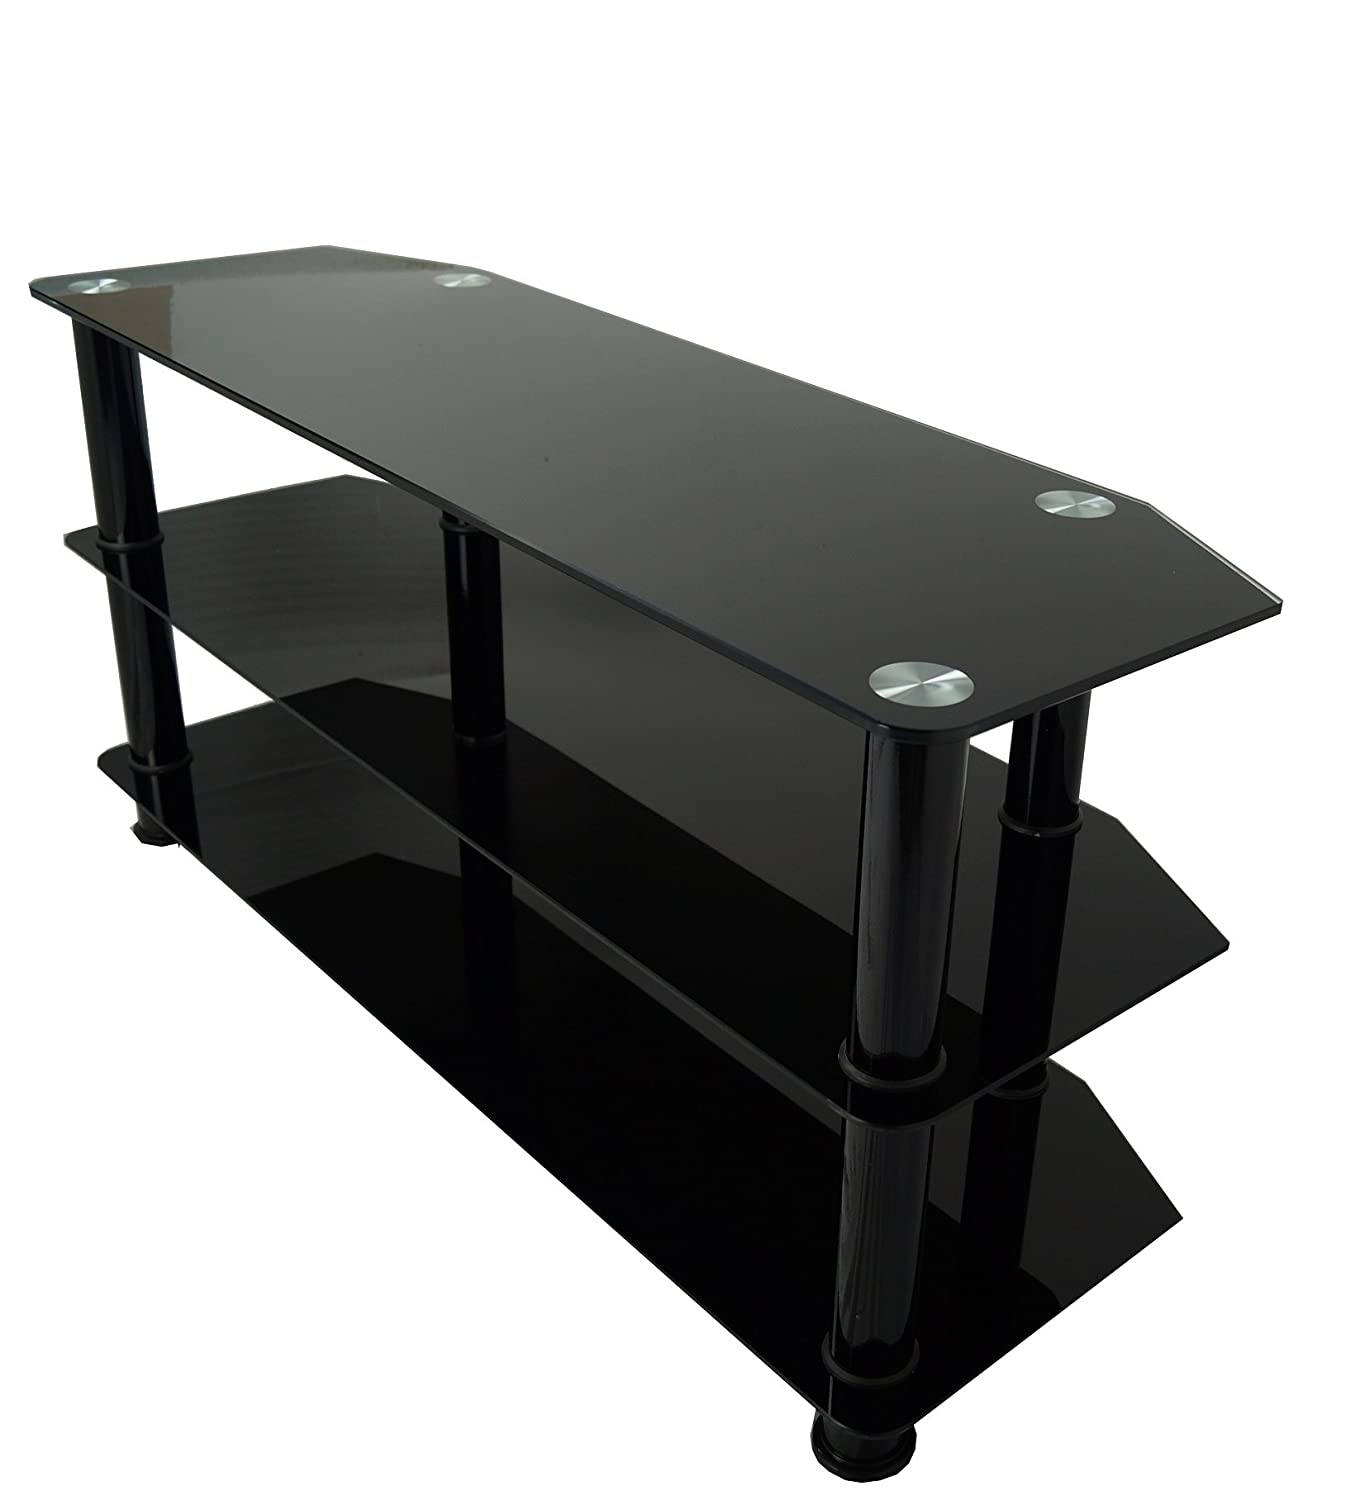 mountright bgtb black glass tv stand for  up to  amazonco  - mountright bgtb black glass tv stand for  up to  amazoncoukelectronics